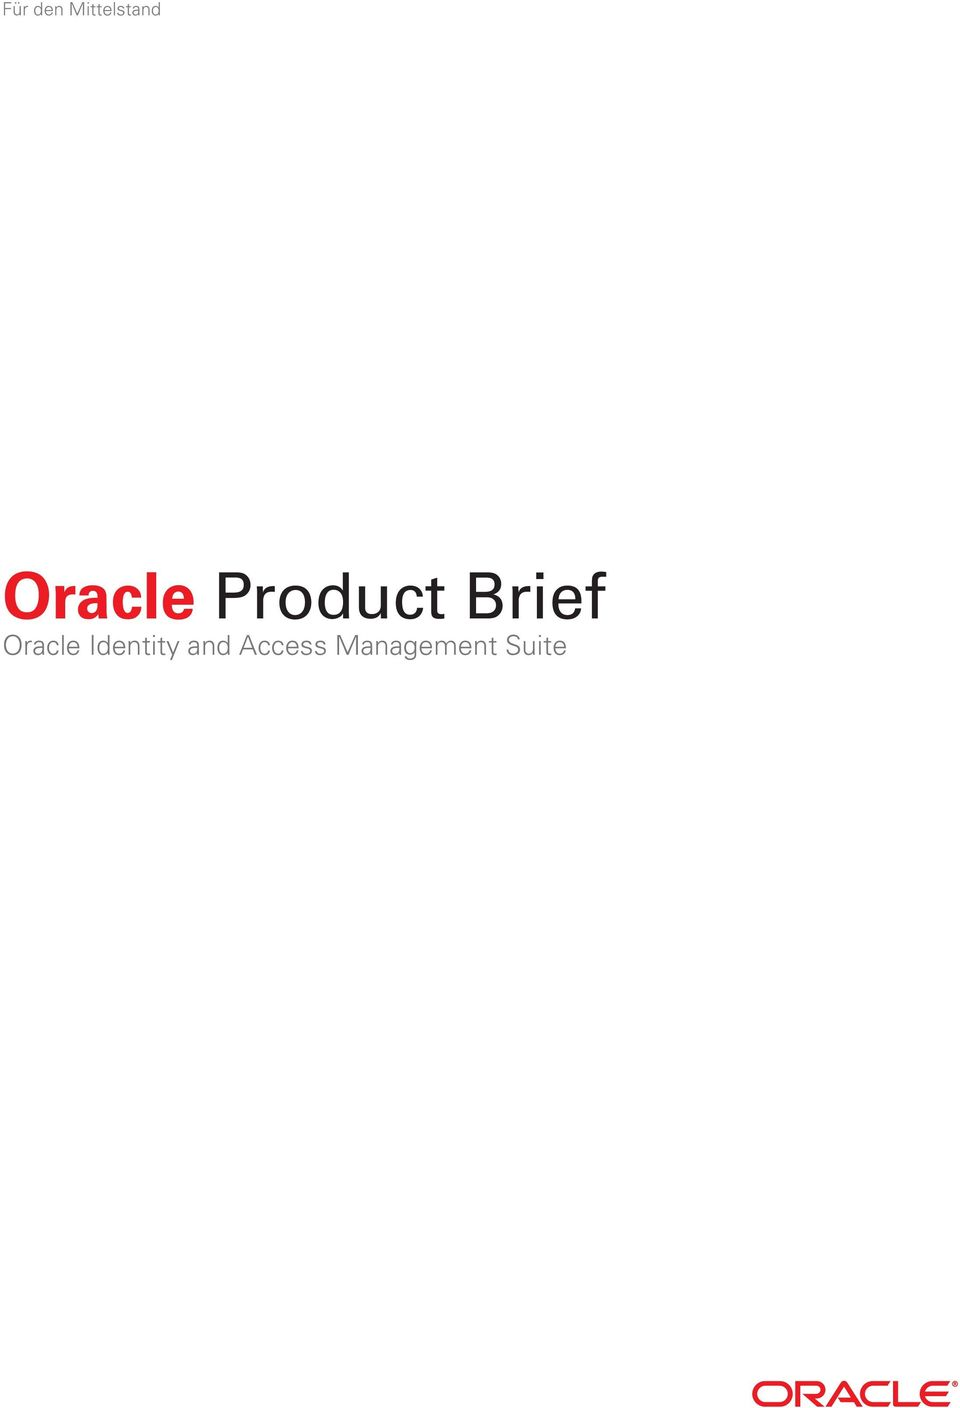 Oracle Identity and